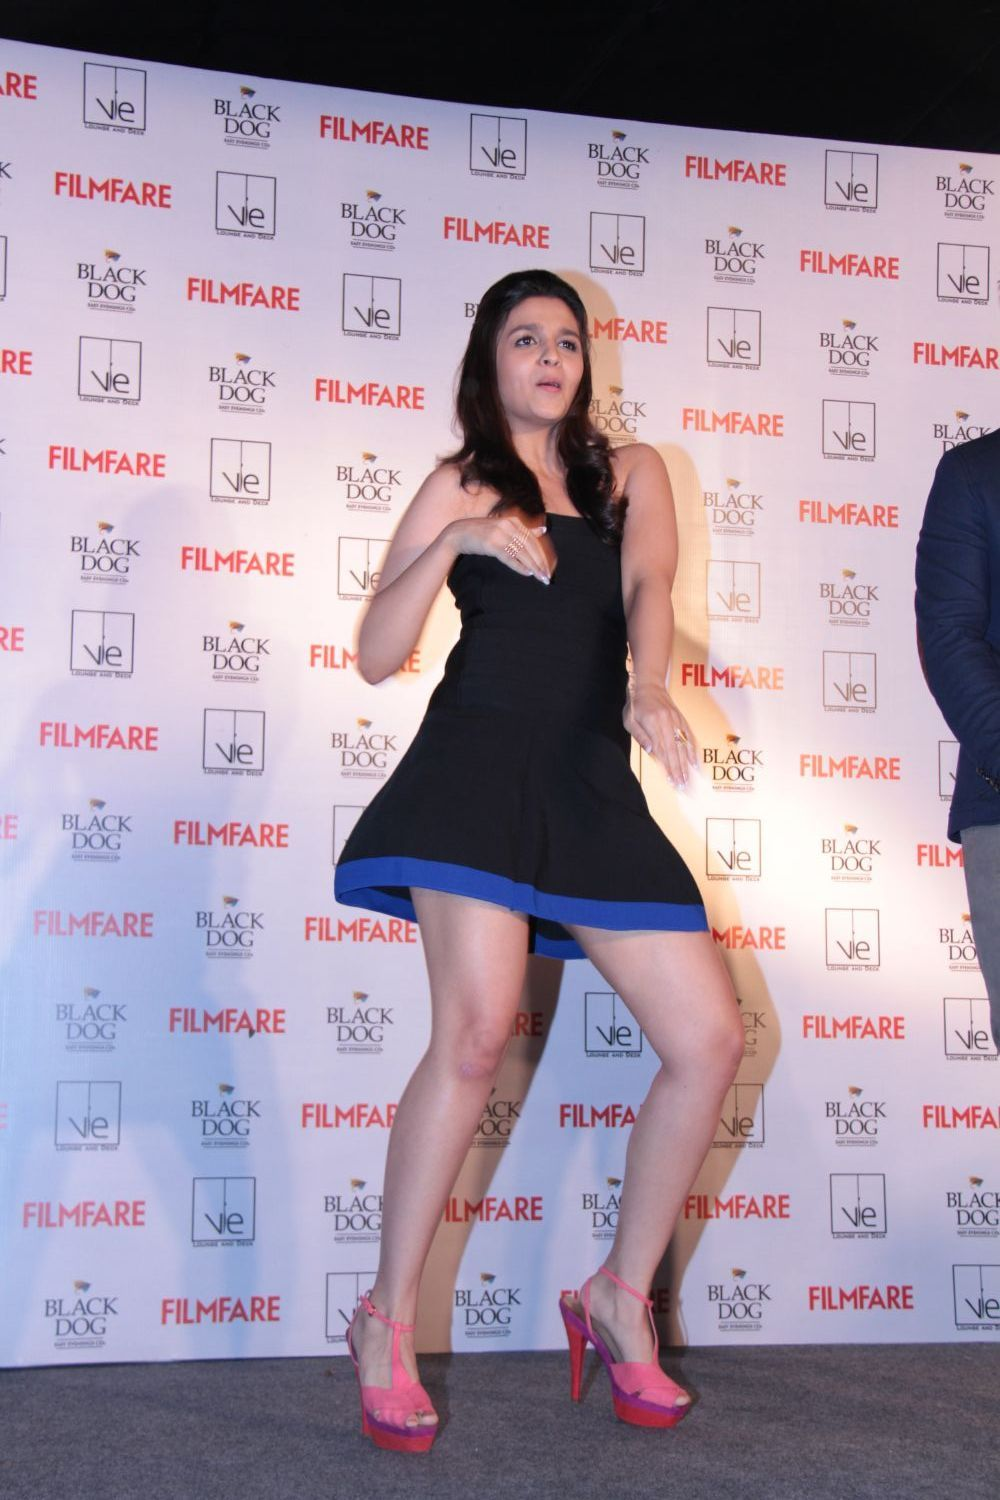 High Quality Bollywood Celebrity Pictures Alia Bhatt -6739